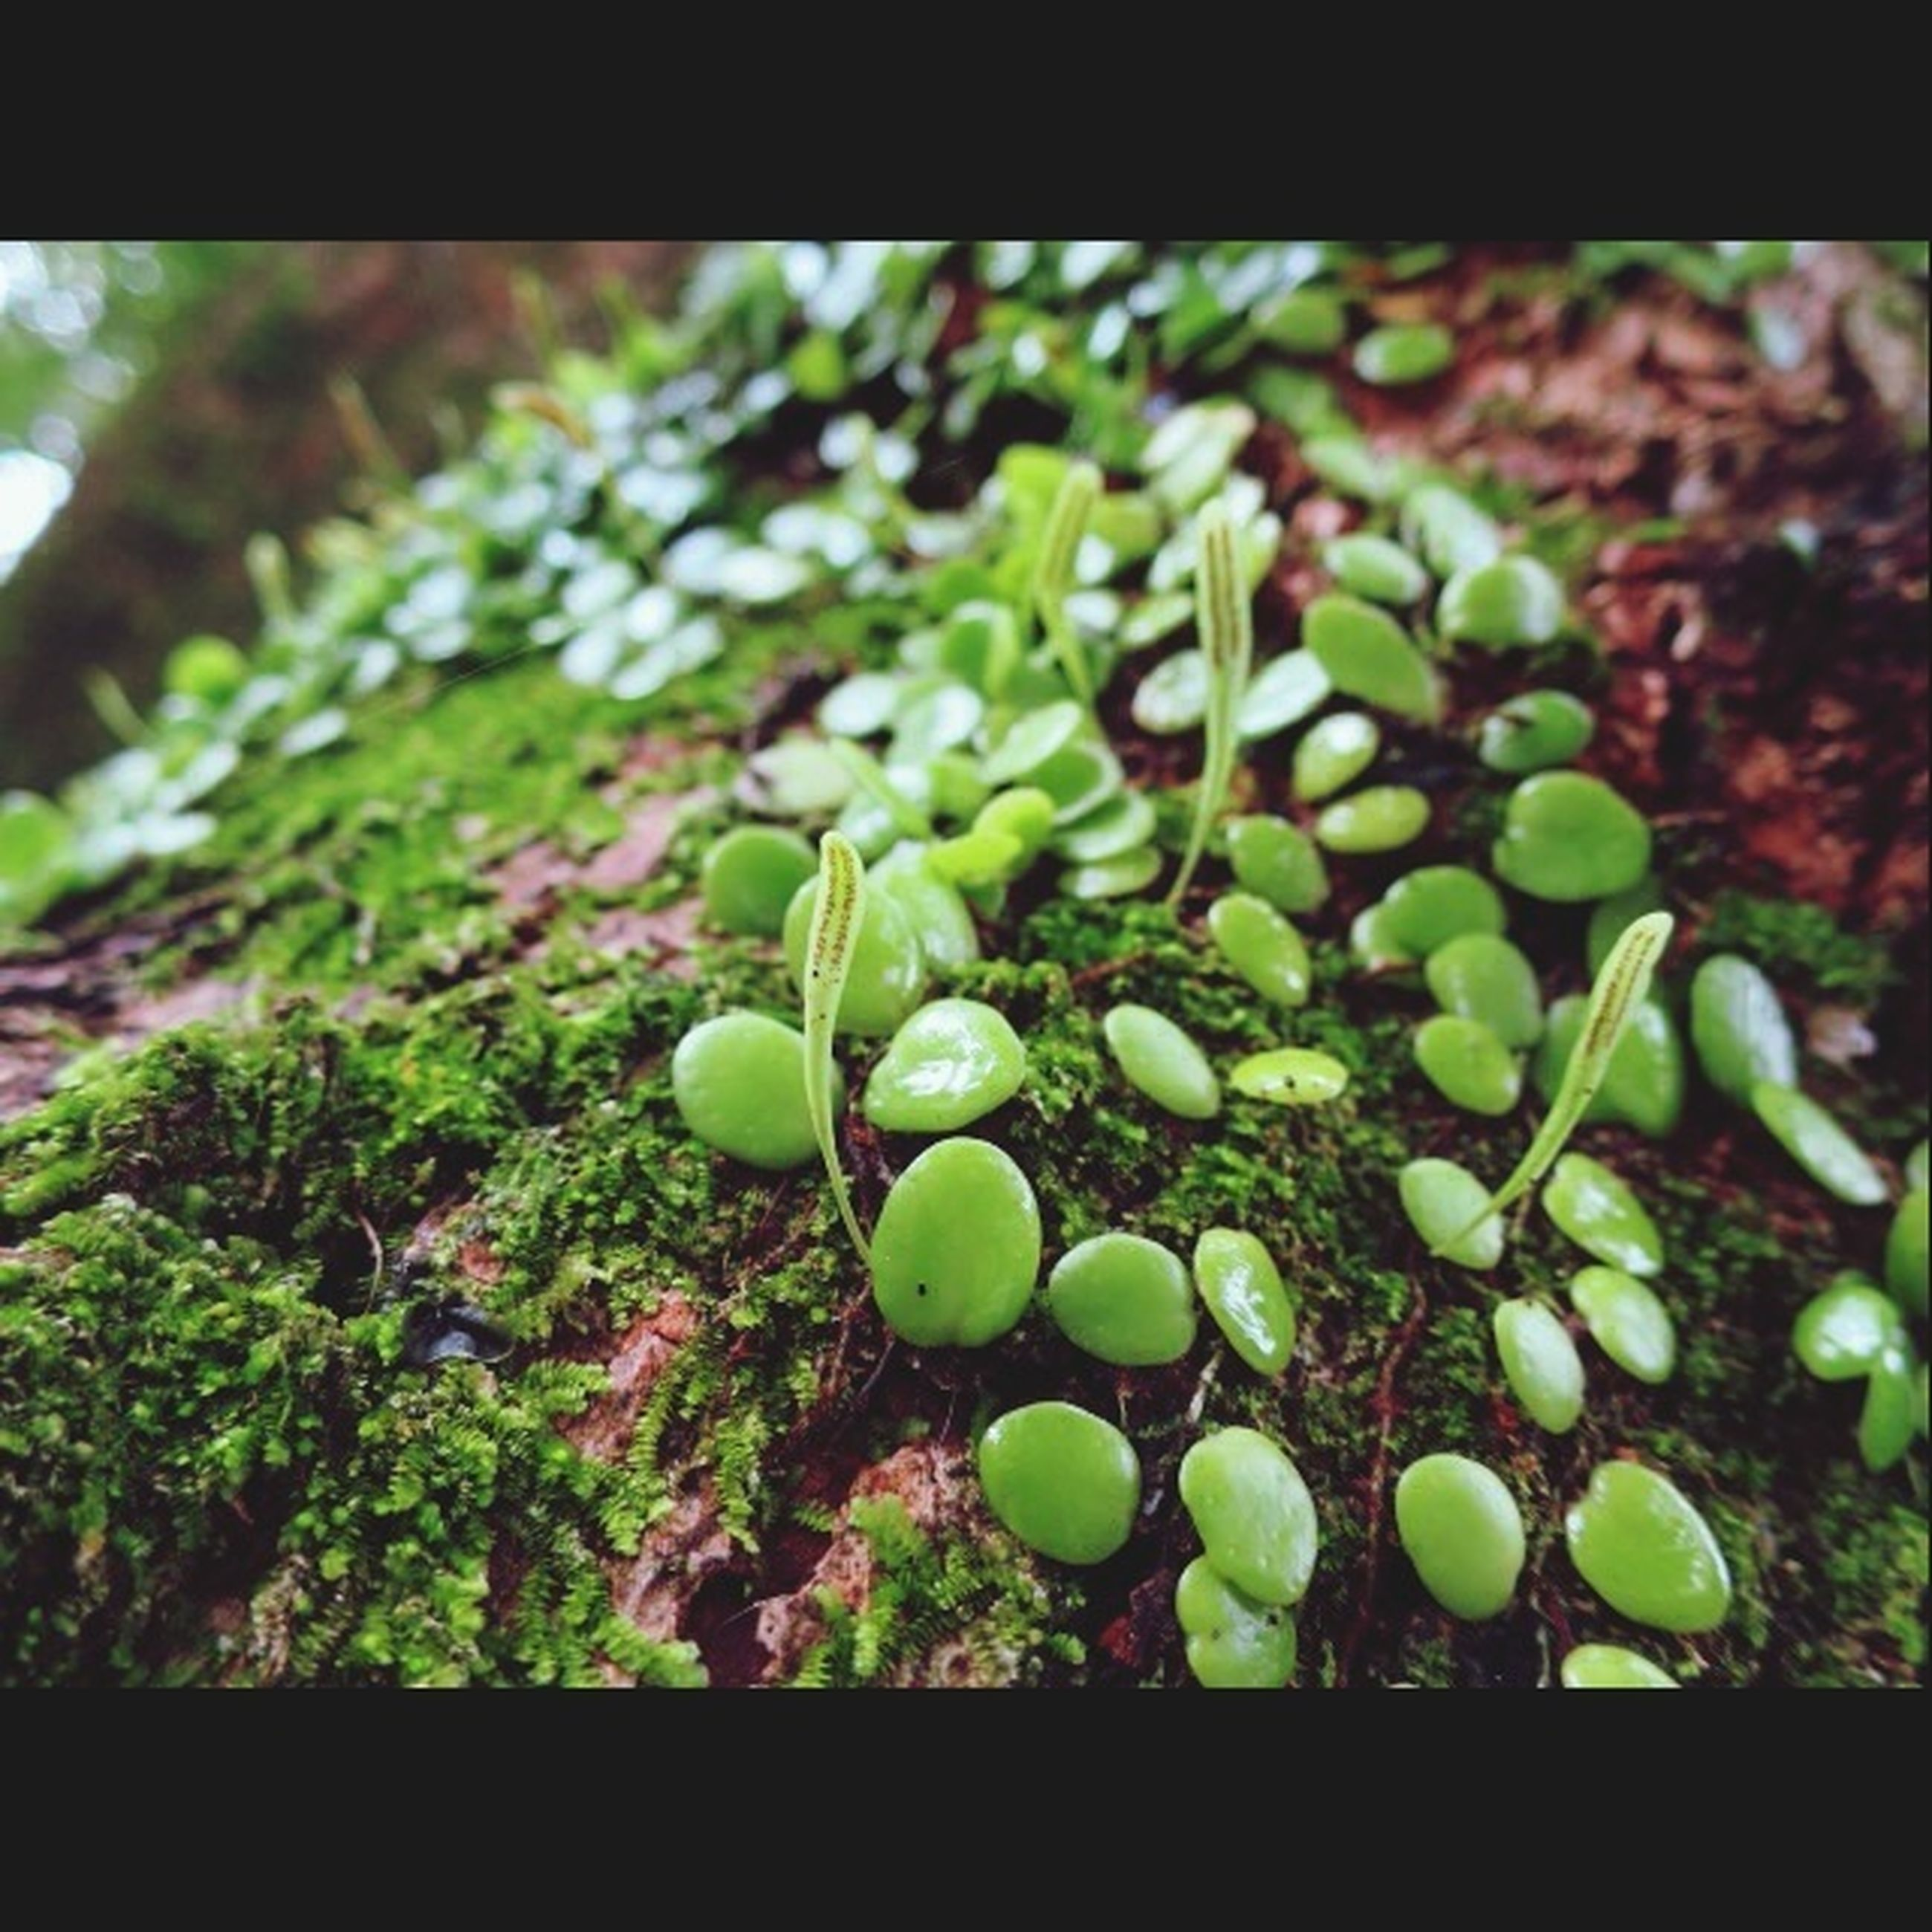 green color, transfer print, growth, freshness, close-up, plant, auto post production filter, nature, growing, leaf, focus on foreground, food and drink, fruit, selective focus, green, healthy eating, day, food, outdoors, beauty in nature